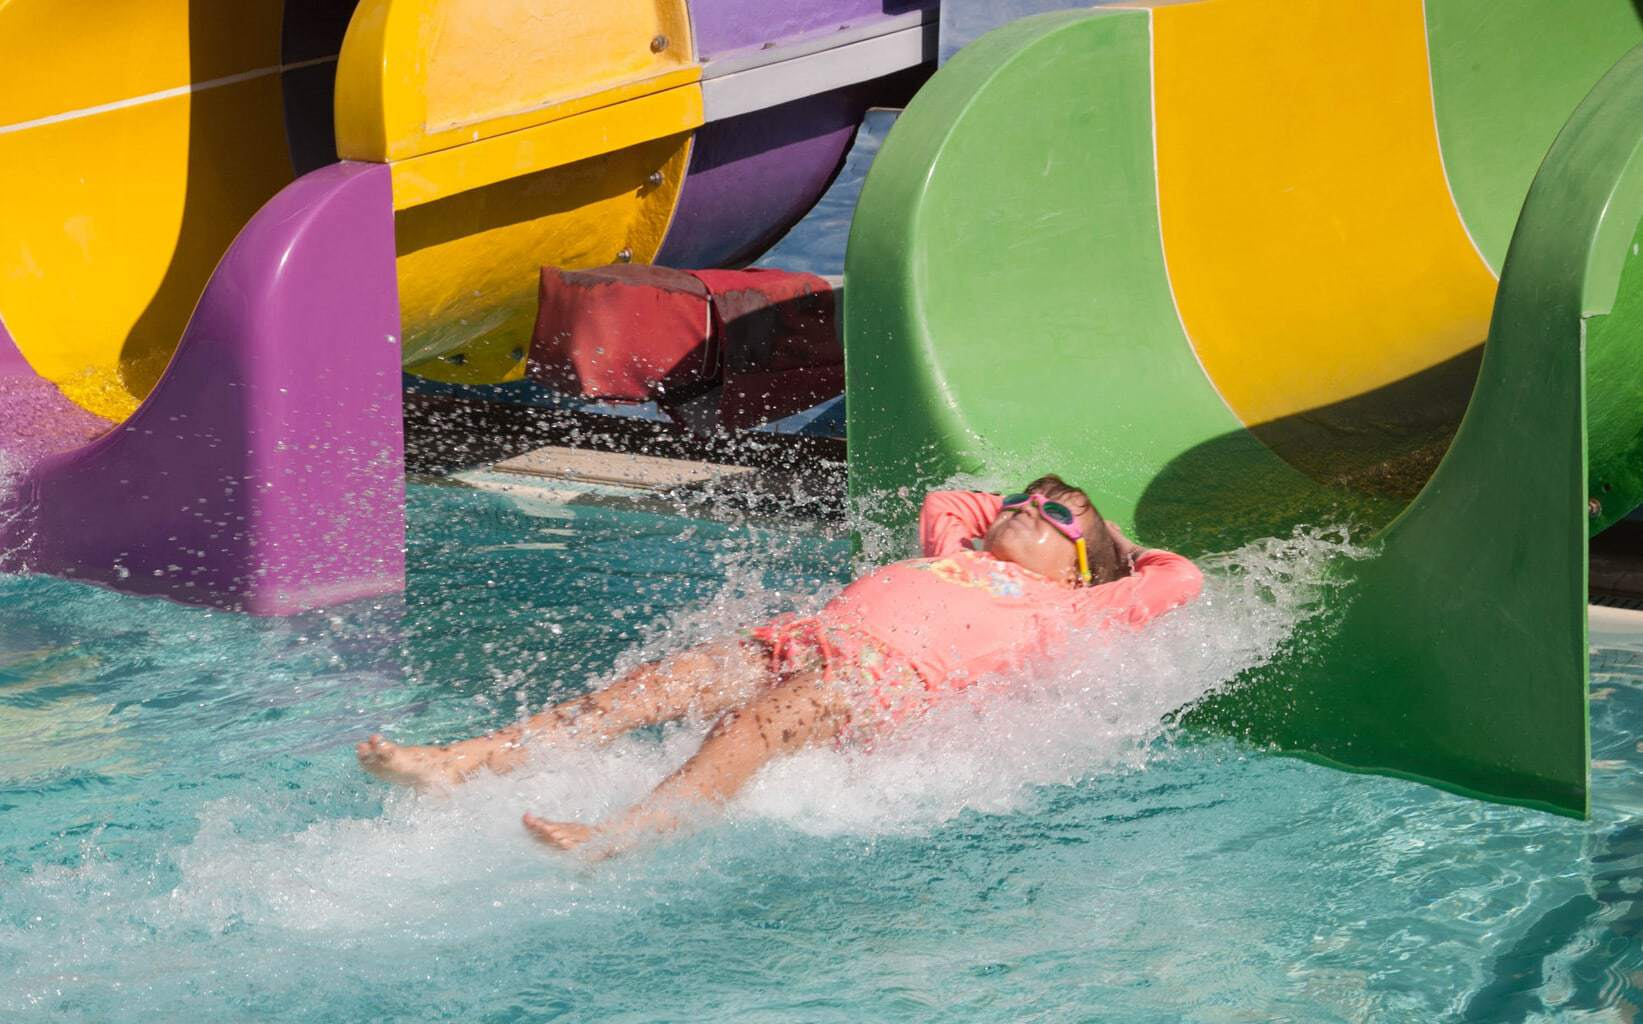 5 Top Tips For Visiting Waterparks with Kids